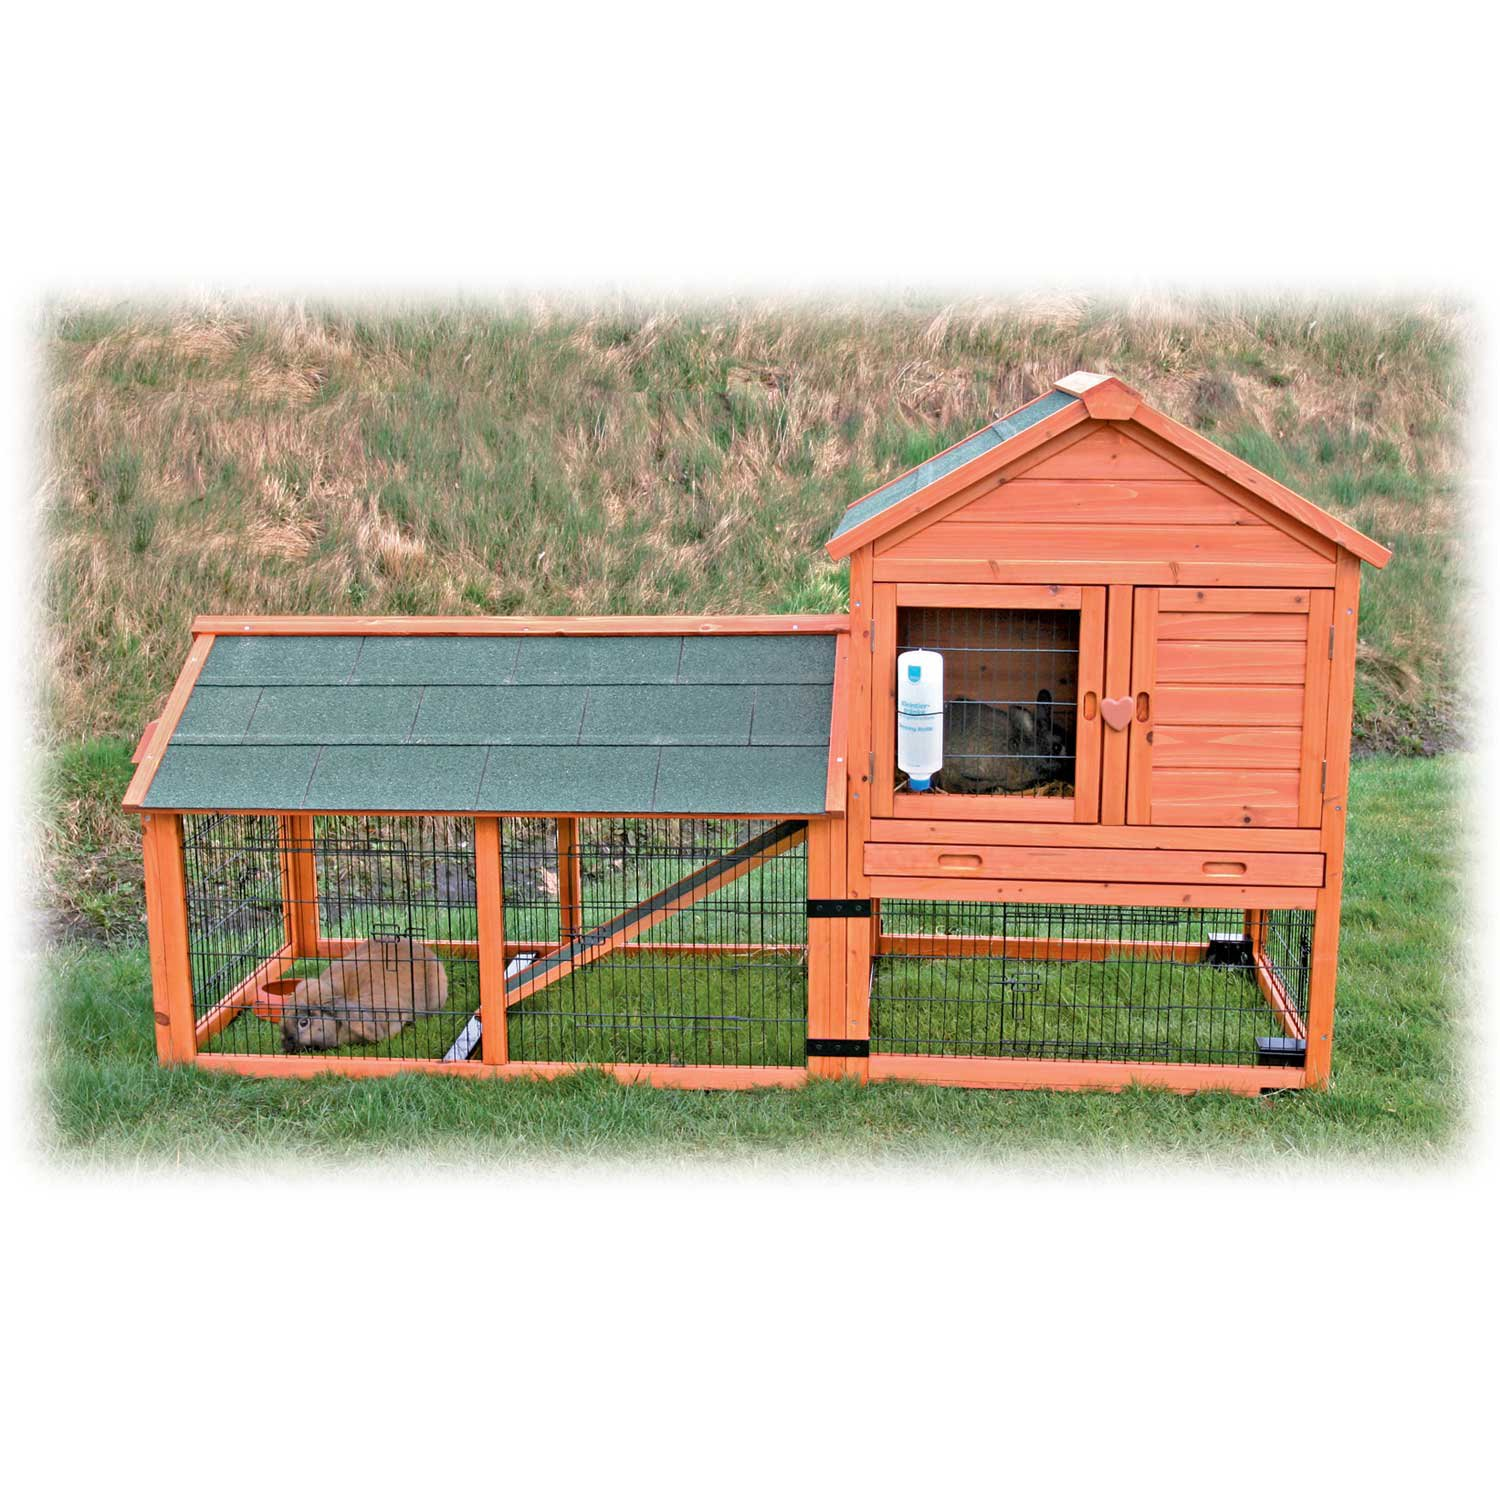 Trixie Natura Two Story Wheeled Rabbit Hutch With Run 78 3 L X 44 5 W 31 75 H Petco